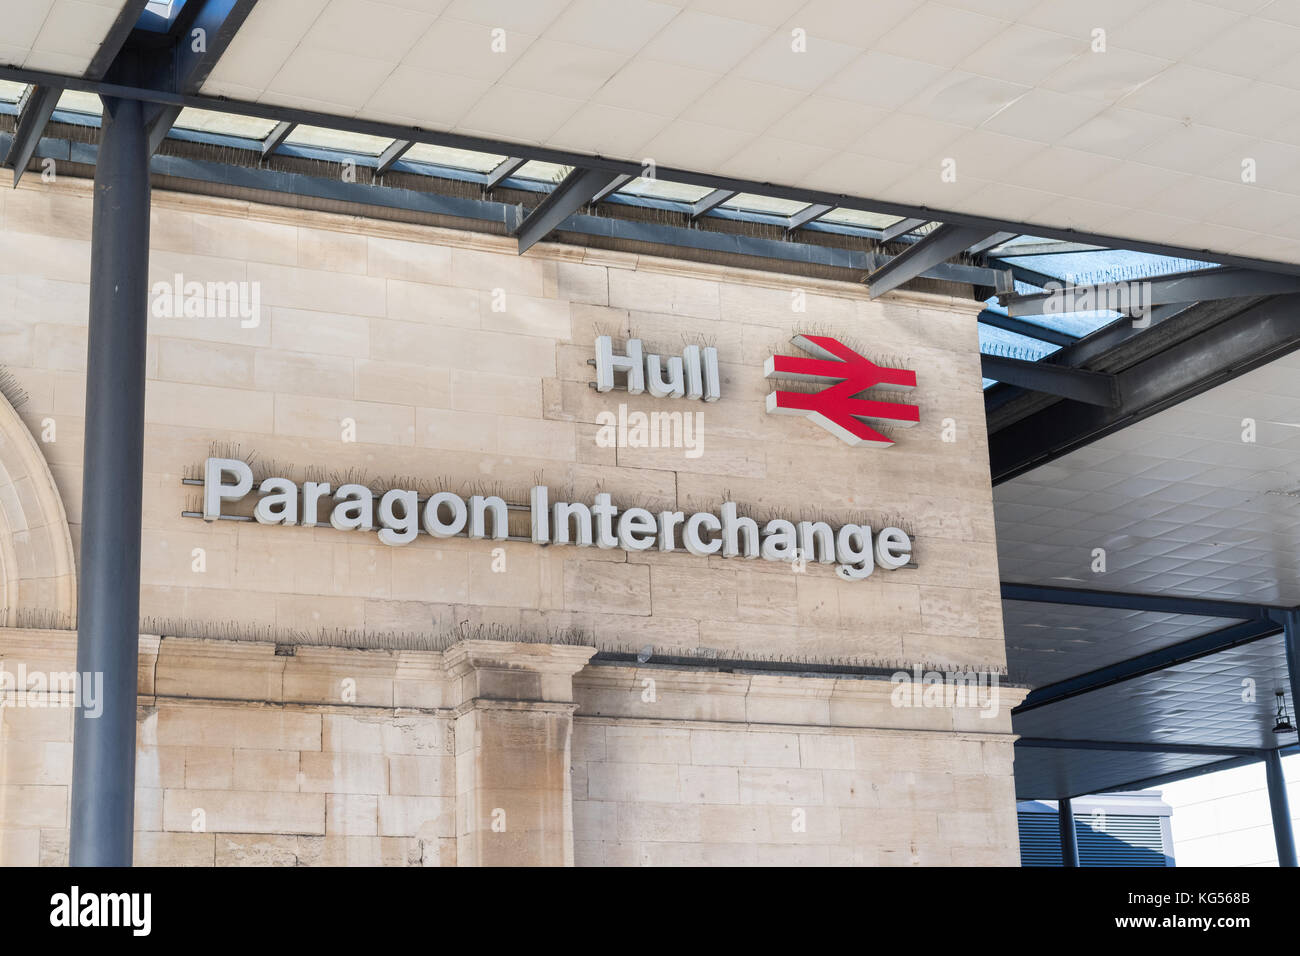 Hull Paragon Interchange Stock Photos Hull Paragon Interchange